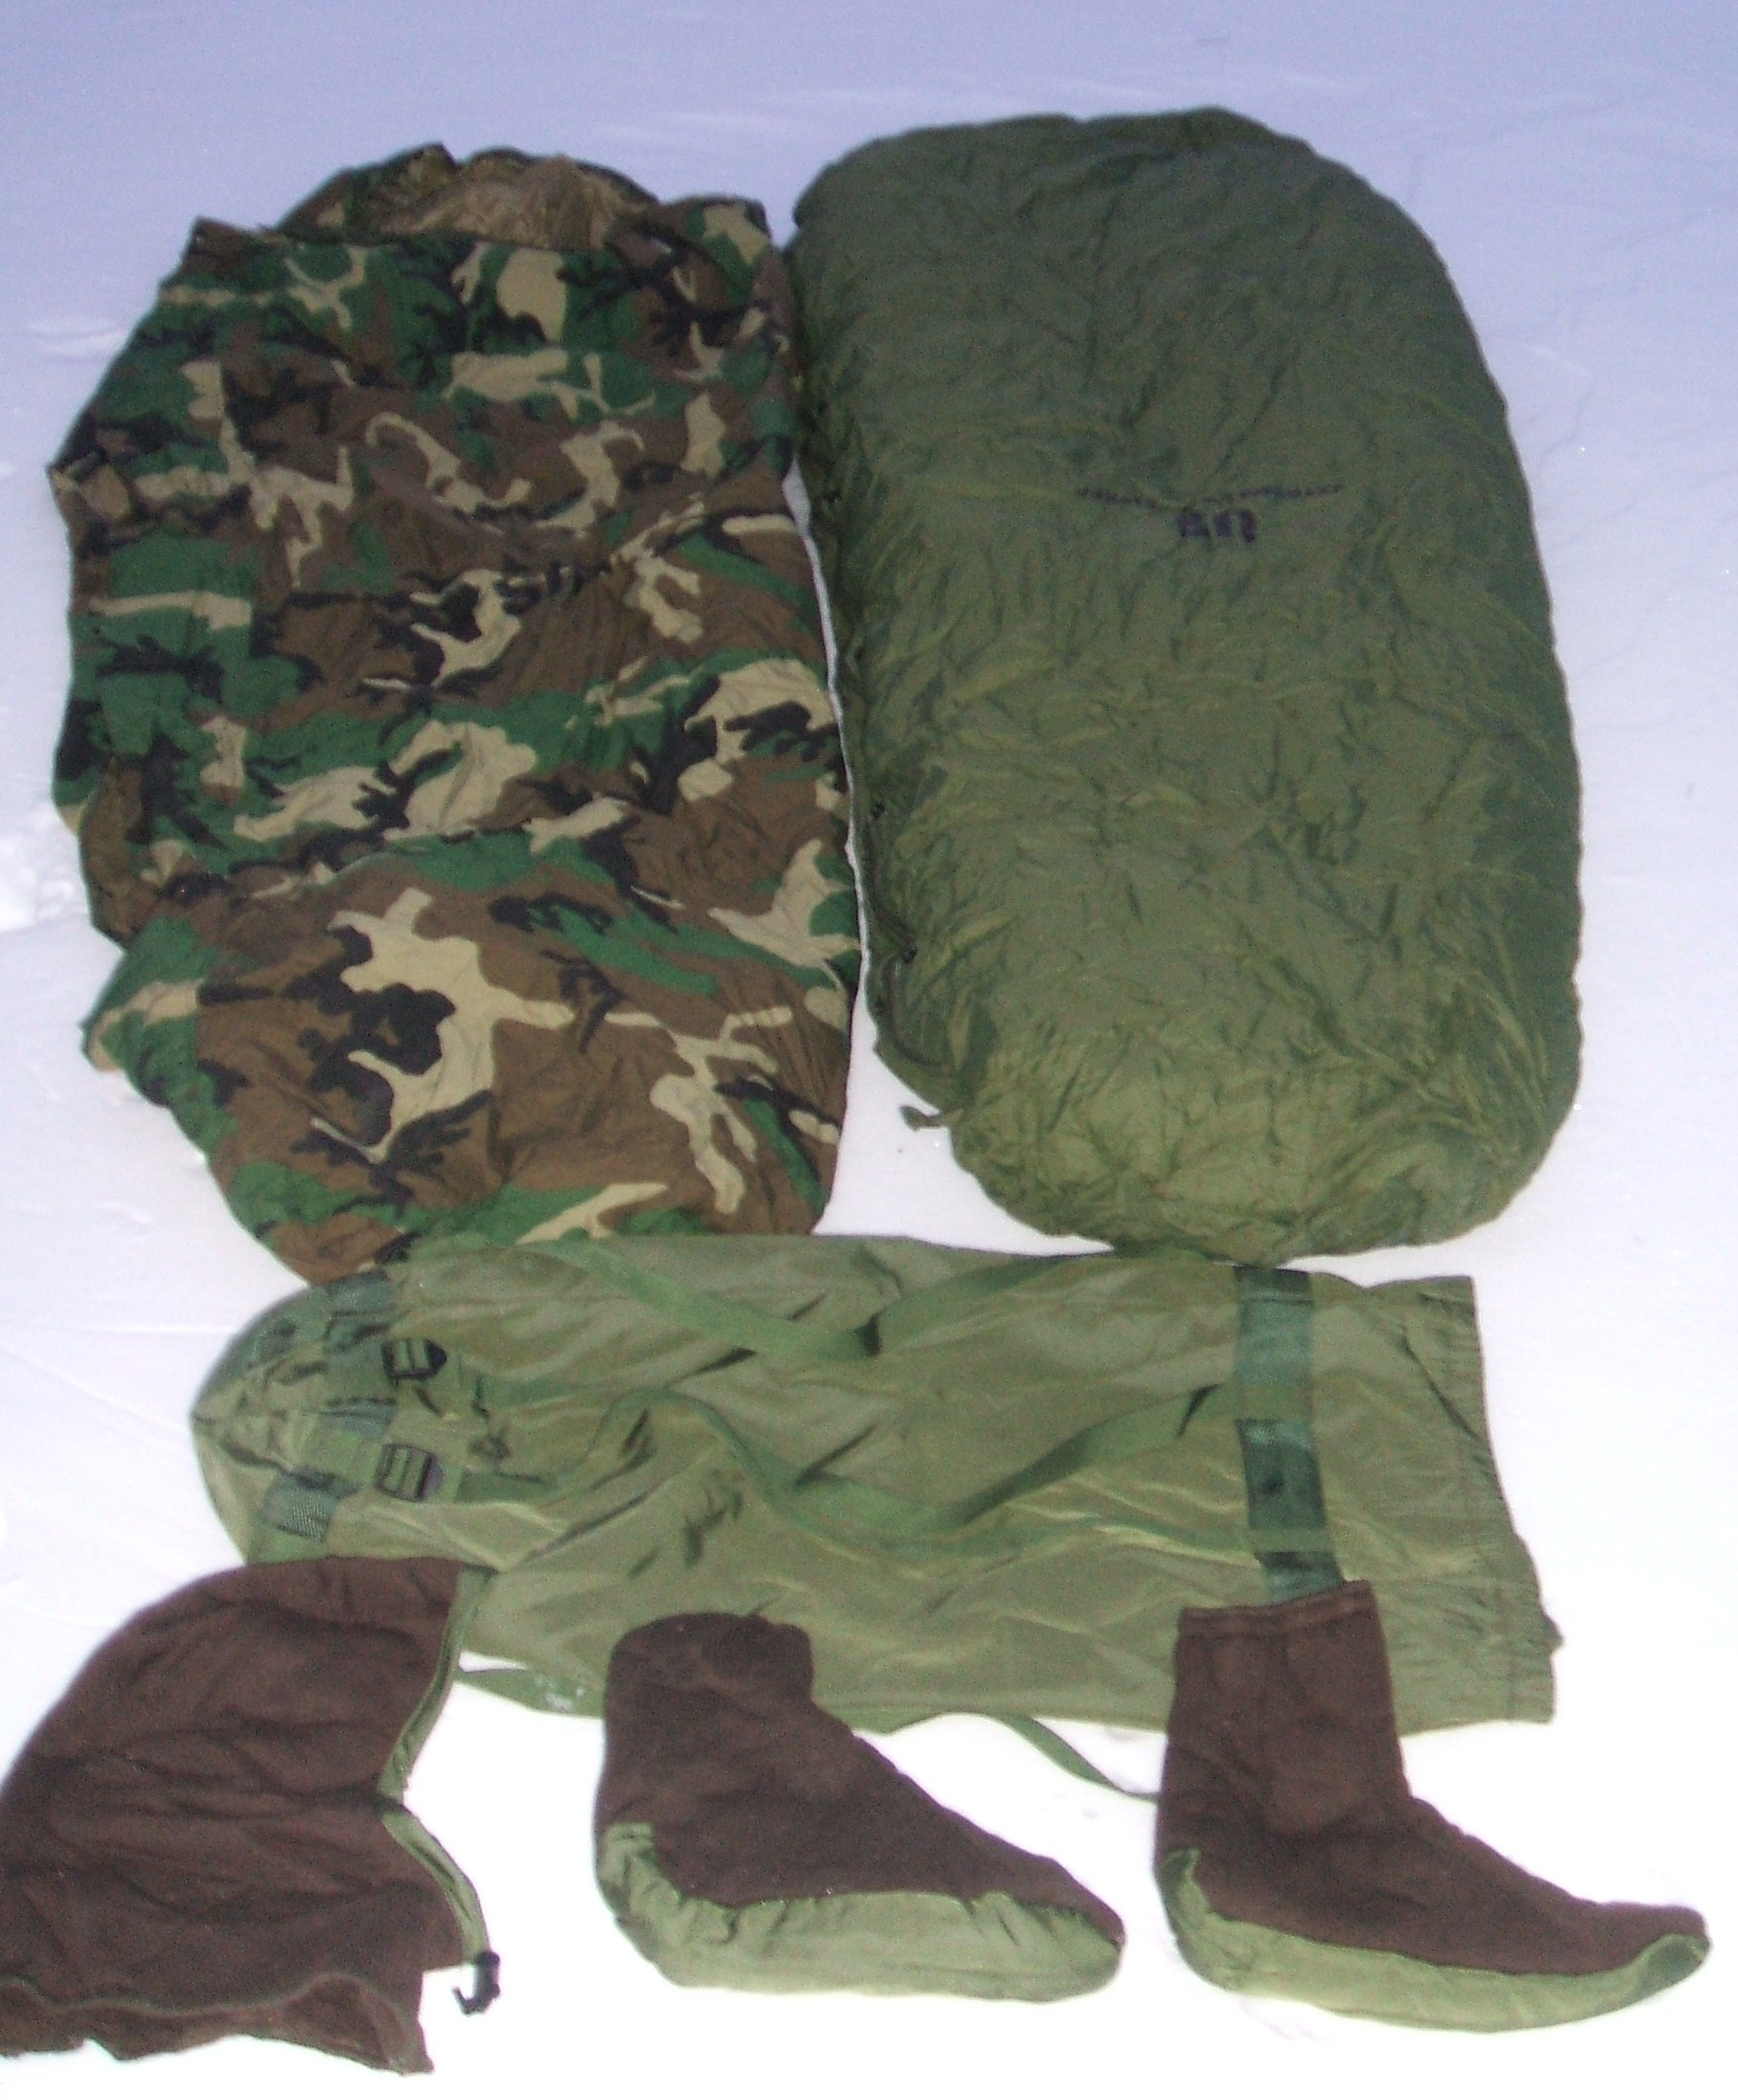 For Sale US Military 5 Piece Extreme Cold Weather Sleep System